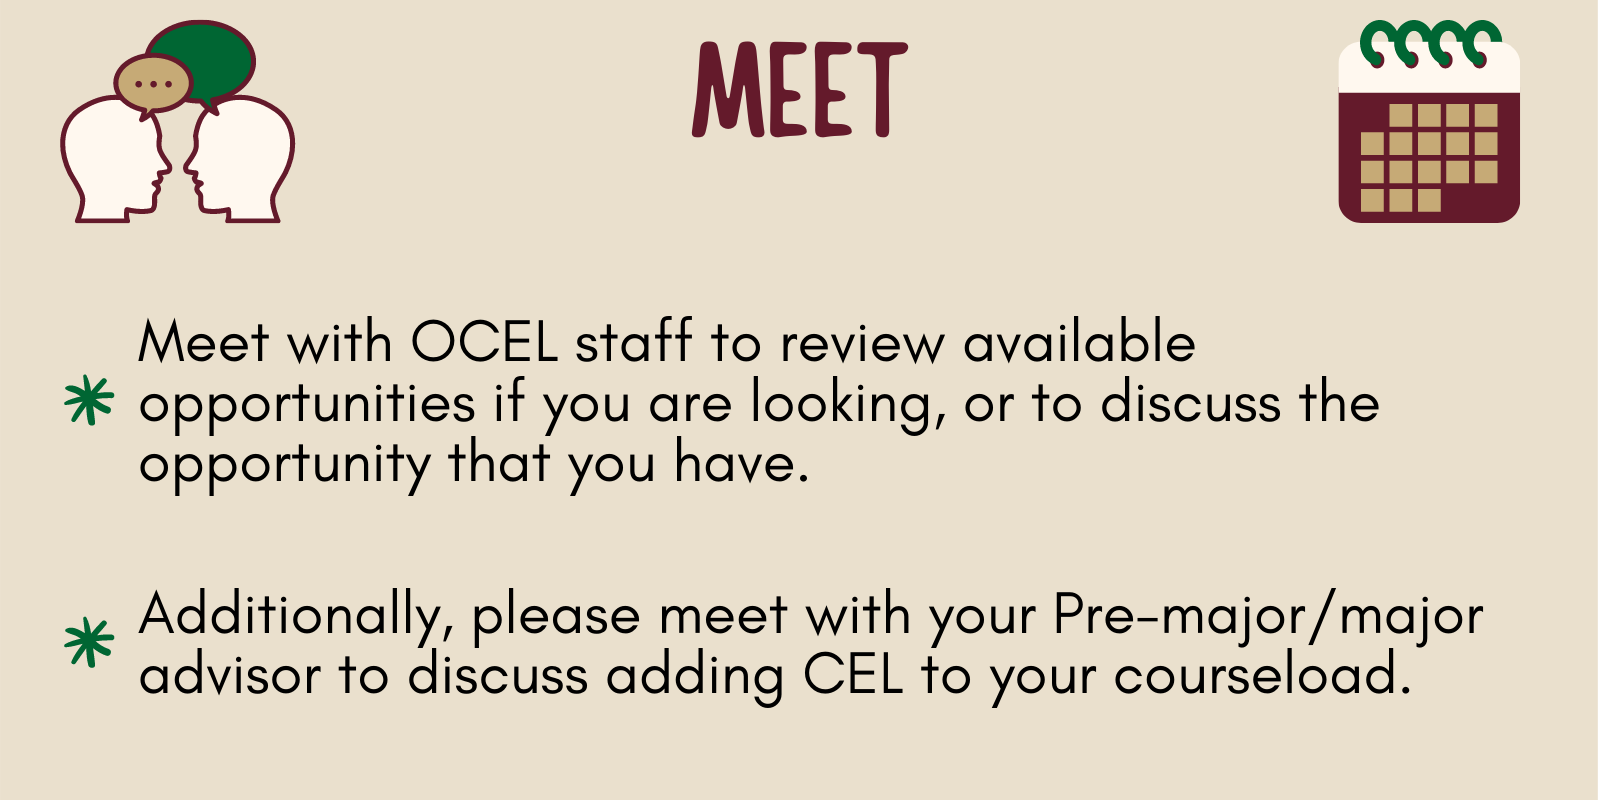 Meet with the OCEL staff and your advisor